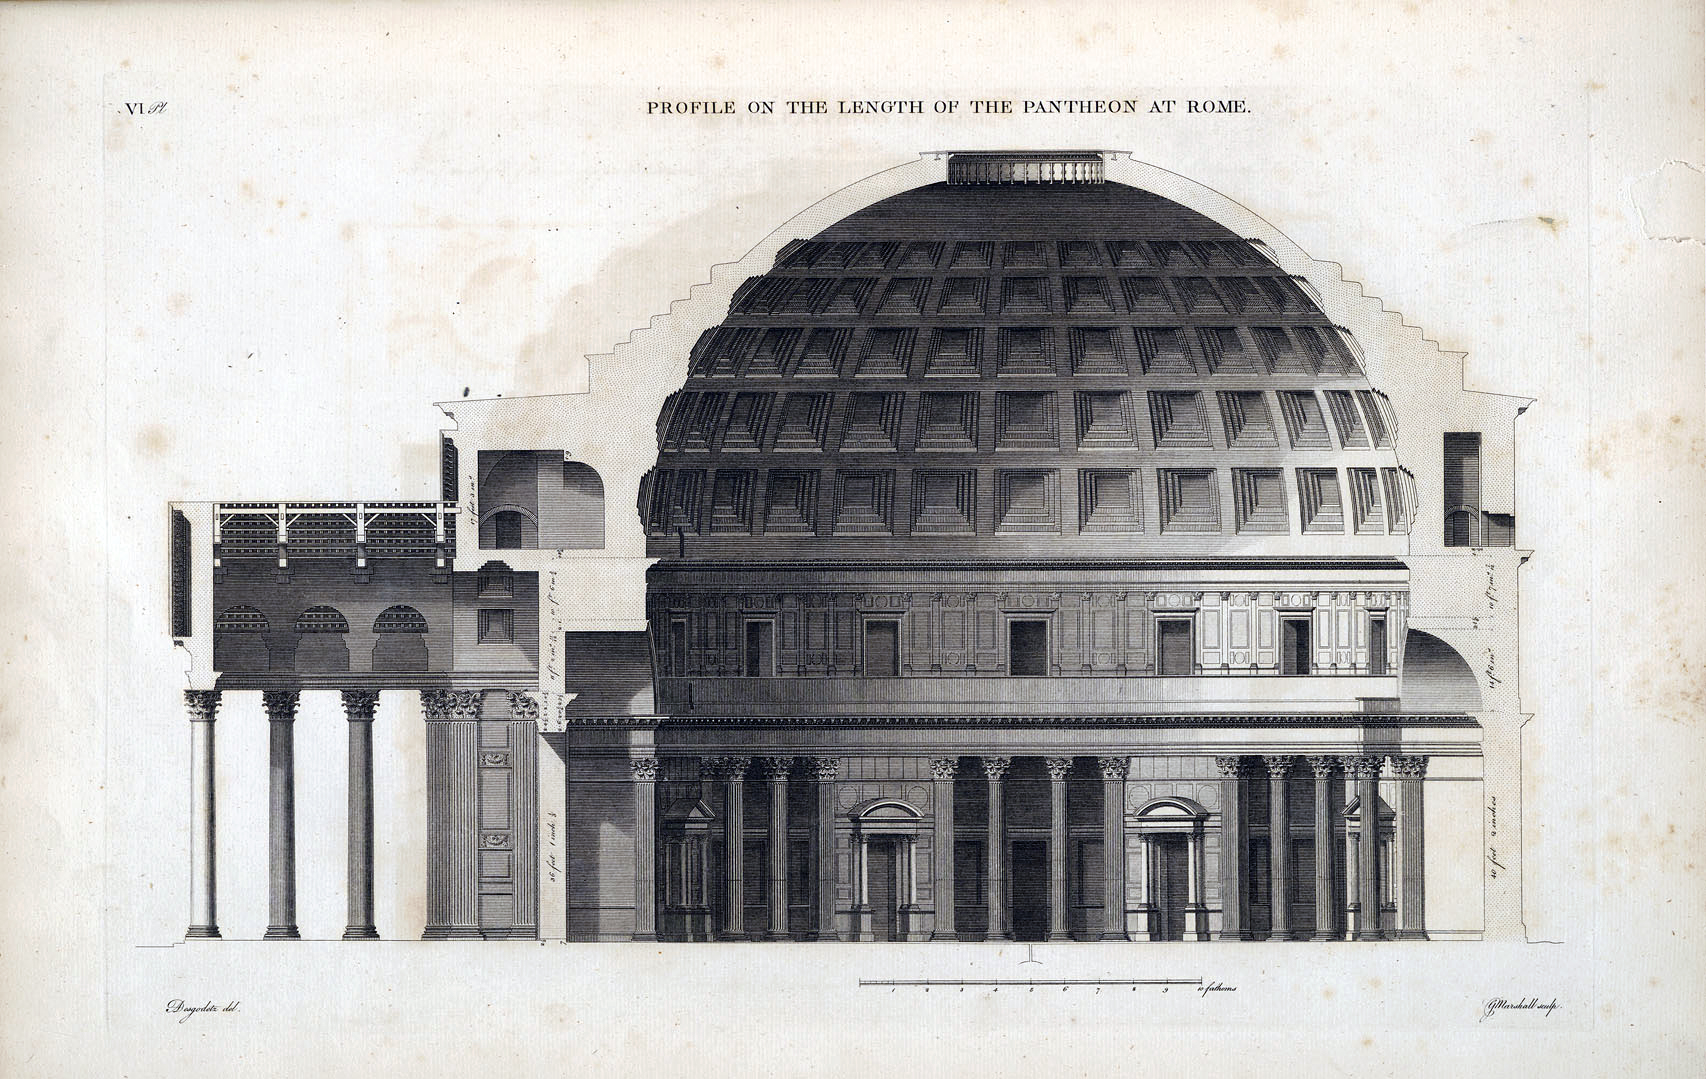 How To Draw A Floor Plan For A House The Roman Pantheon Eighth Wonder Of The Ancient World